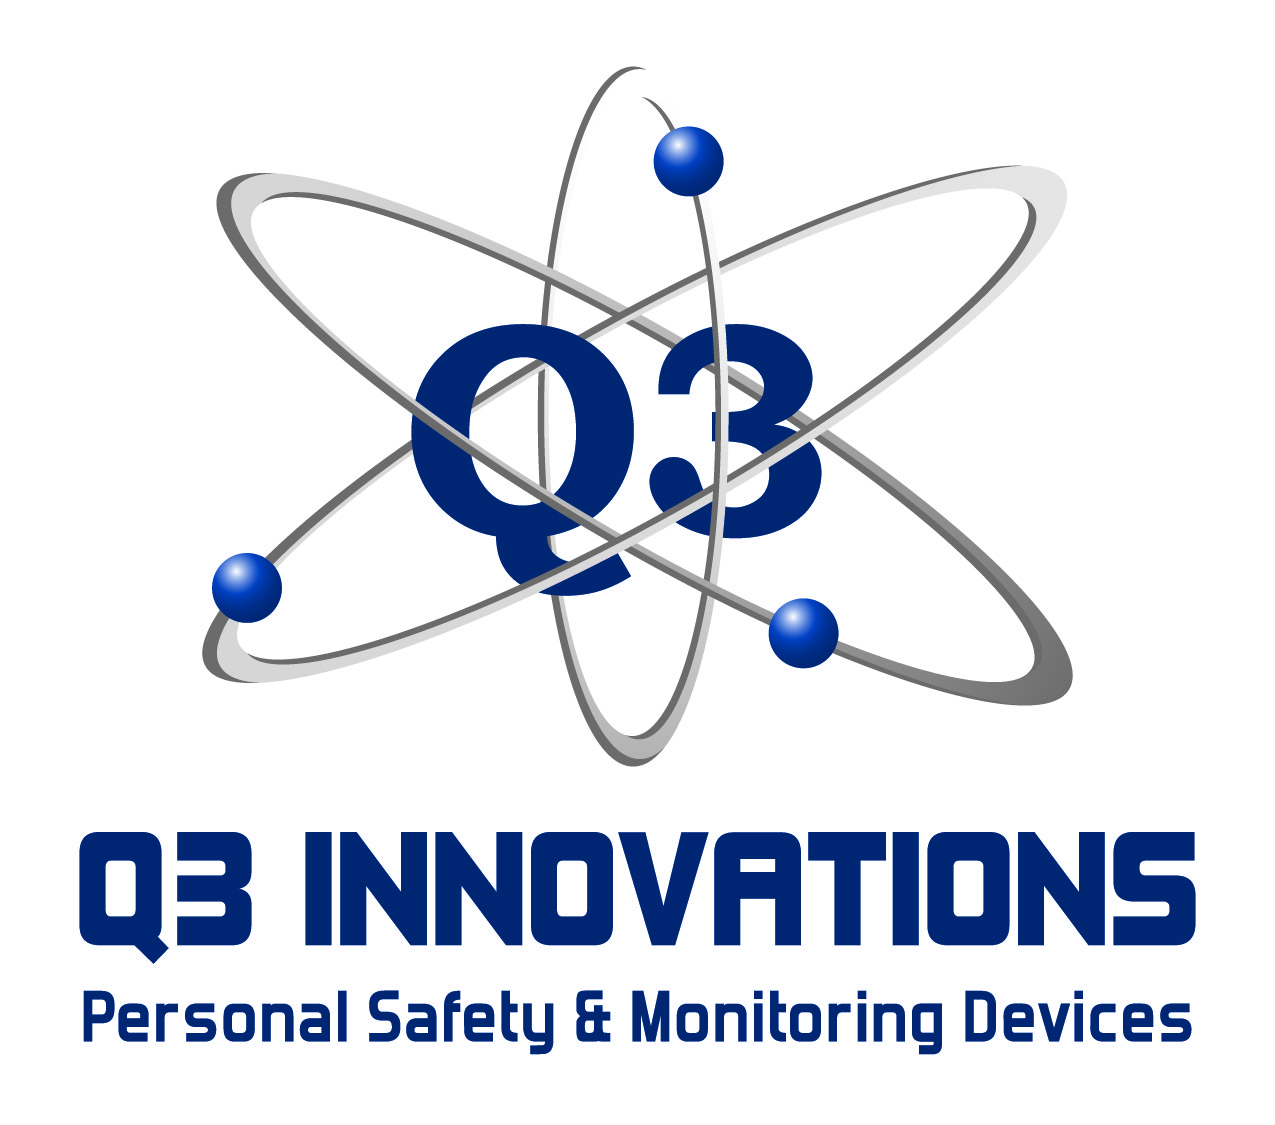 q3 innovations user manual